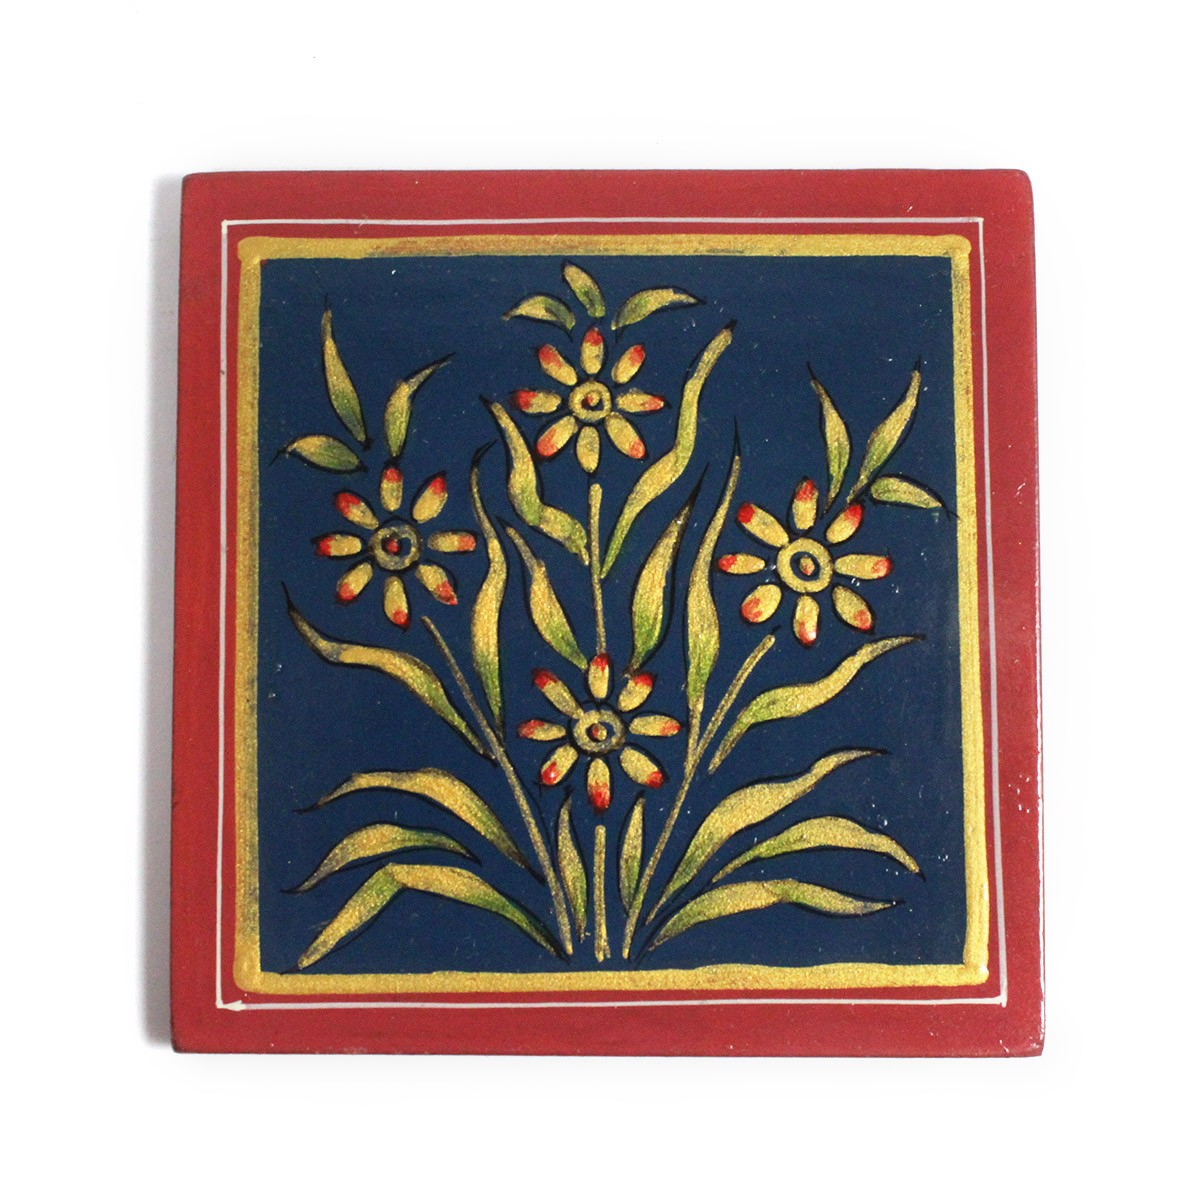 Exclusive Wooden Blue Coaster Set Metal Inlay Art For Gifting by Rural Artisans